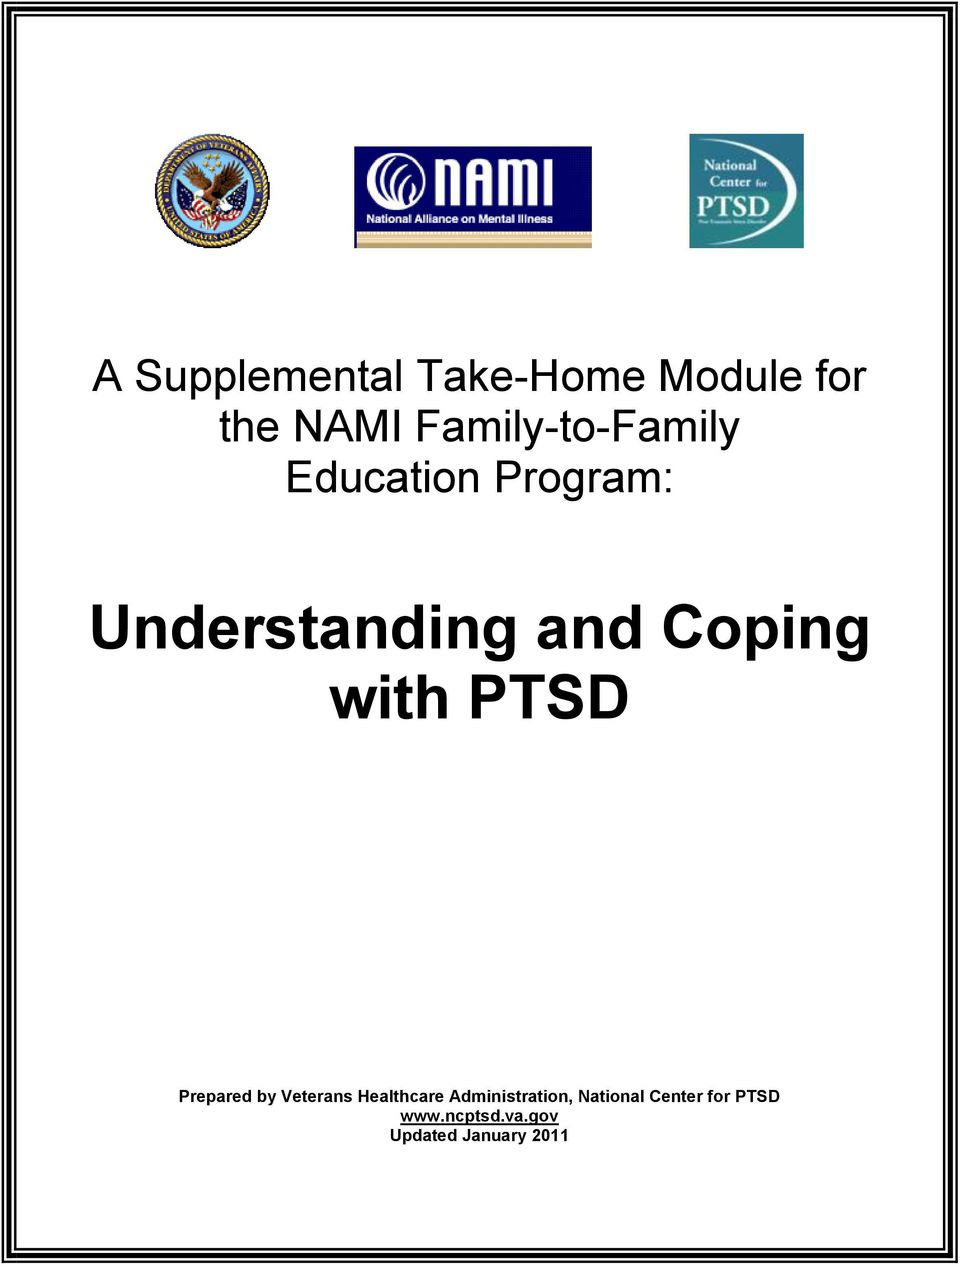 Coping with PTSD Prepared by Veterans Healthcare